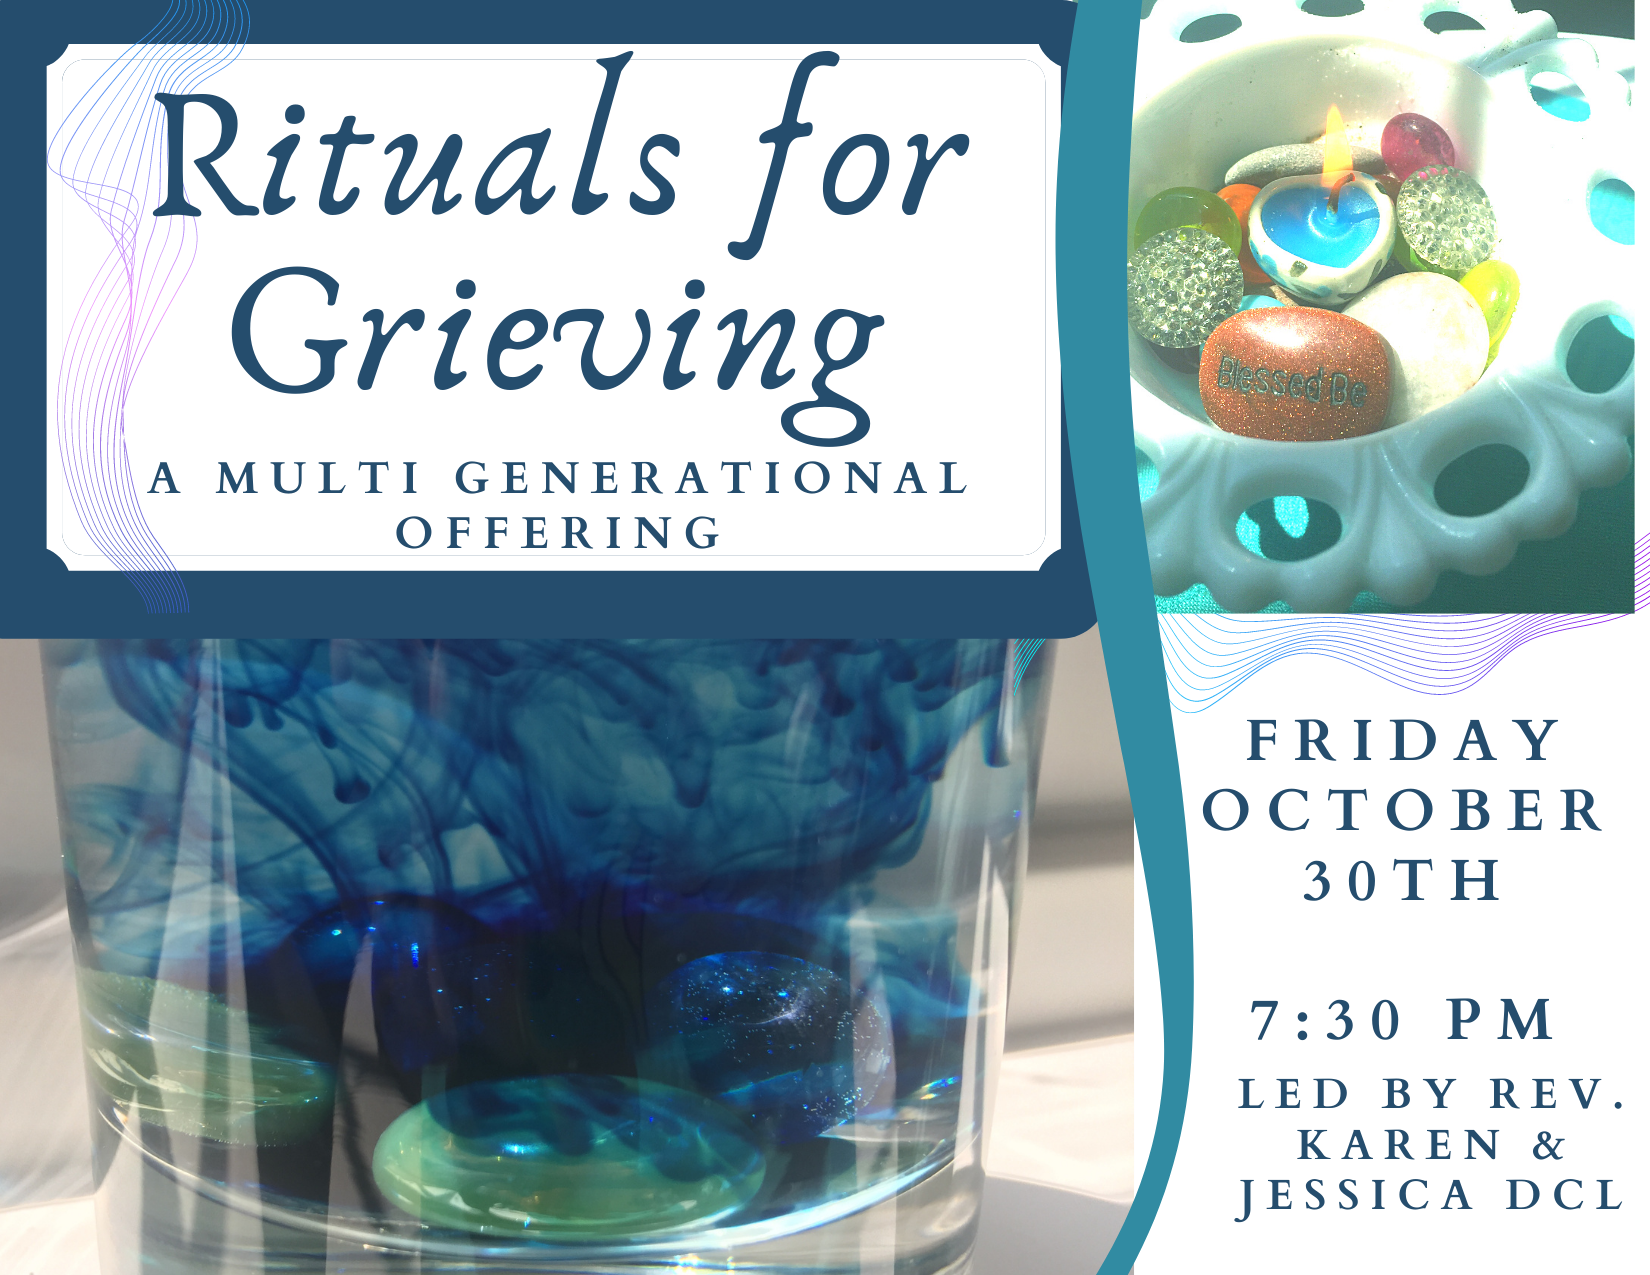 Rituals for Grieving — Friday, October 30th, 2020 @7:30 PM EST